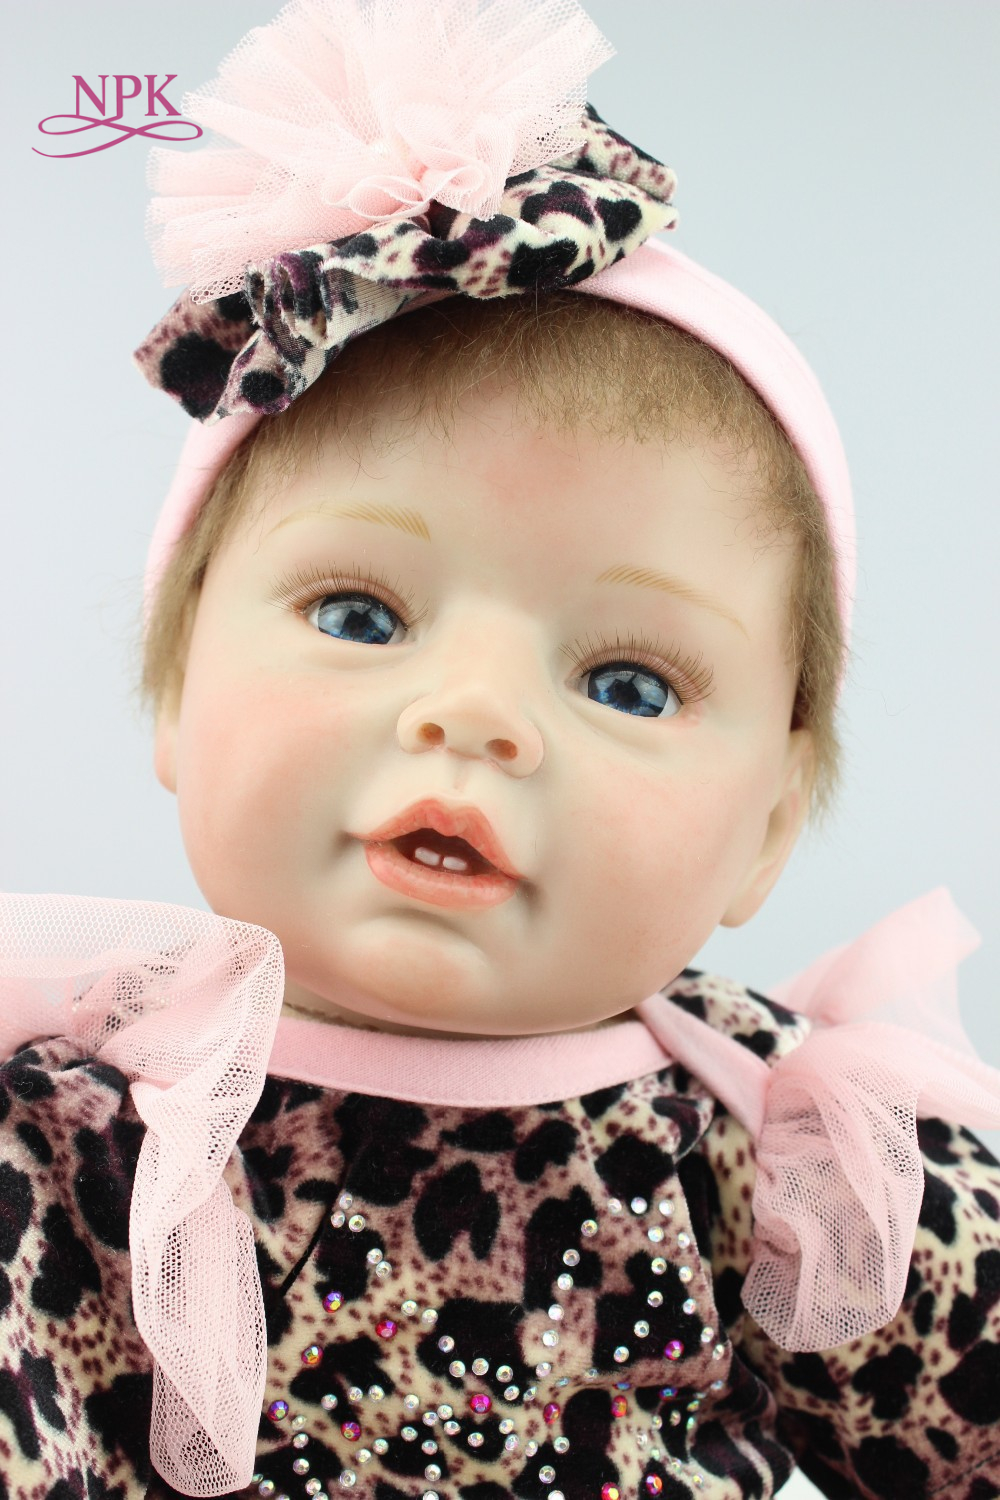 NPK reborn doll with soft real gentle touch wholesale realistic simulation reborn baby doll soft silicone vinyl doll alive reborn doll with soft real gentle touch wholesale realistic simulation reborn baby doll soft silicone vinyl